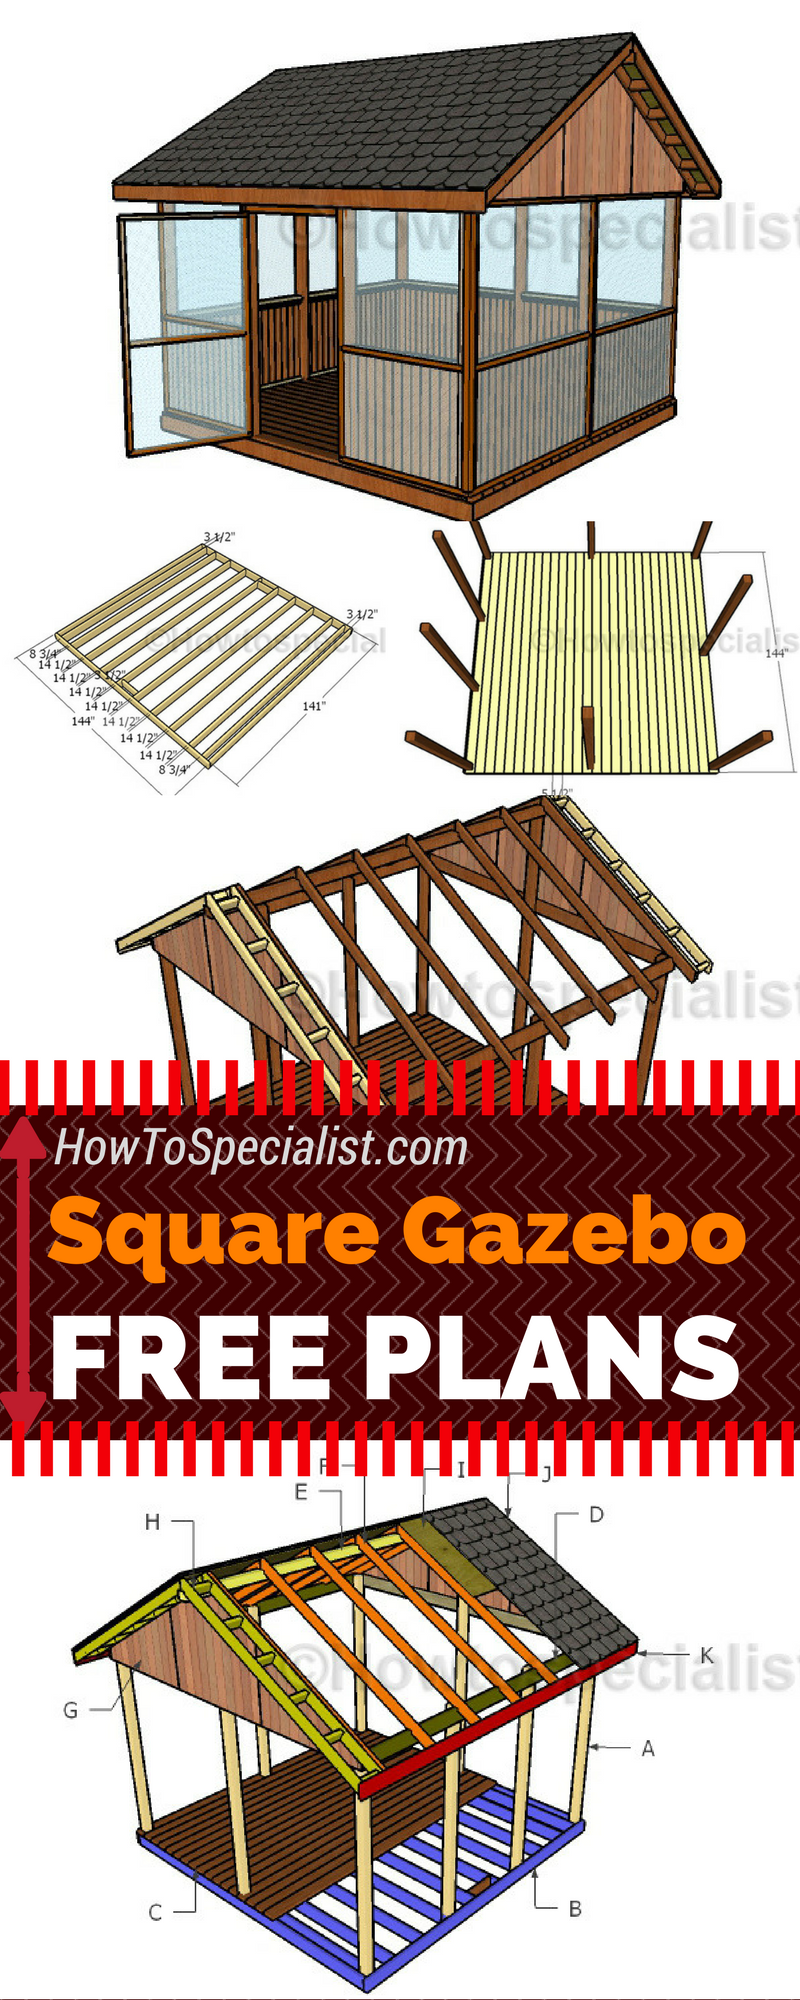 it is super easy to build a screened gazebo for your backyard check out my free square gazebo plans and follow the step by step instructions diy gazebo [ 800 x 2000 Pixel ]